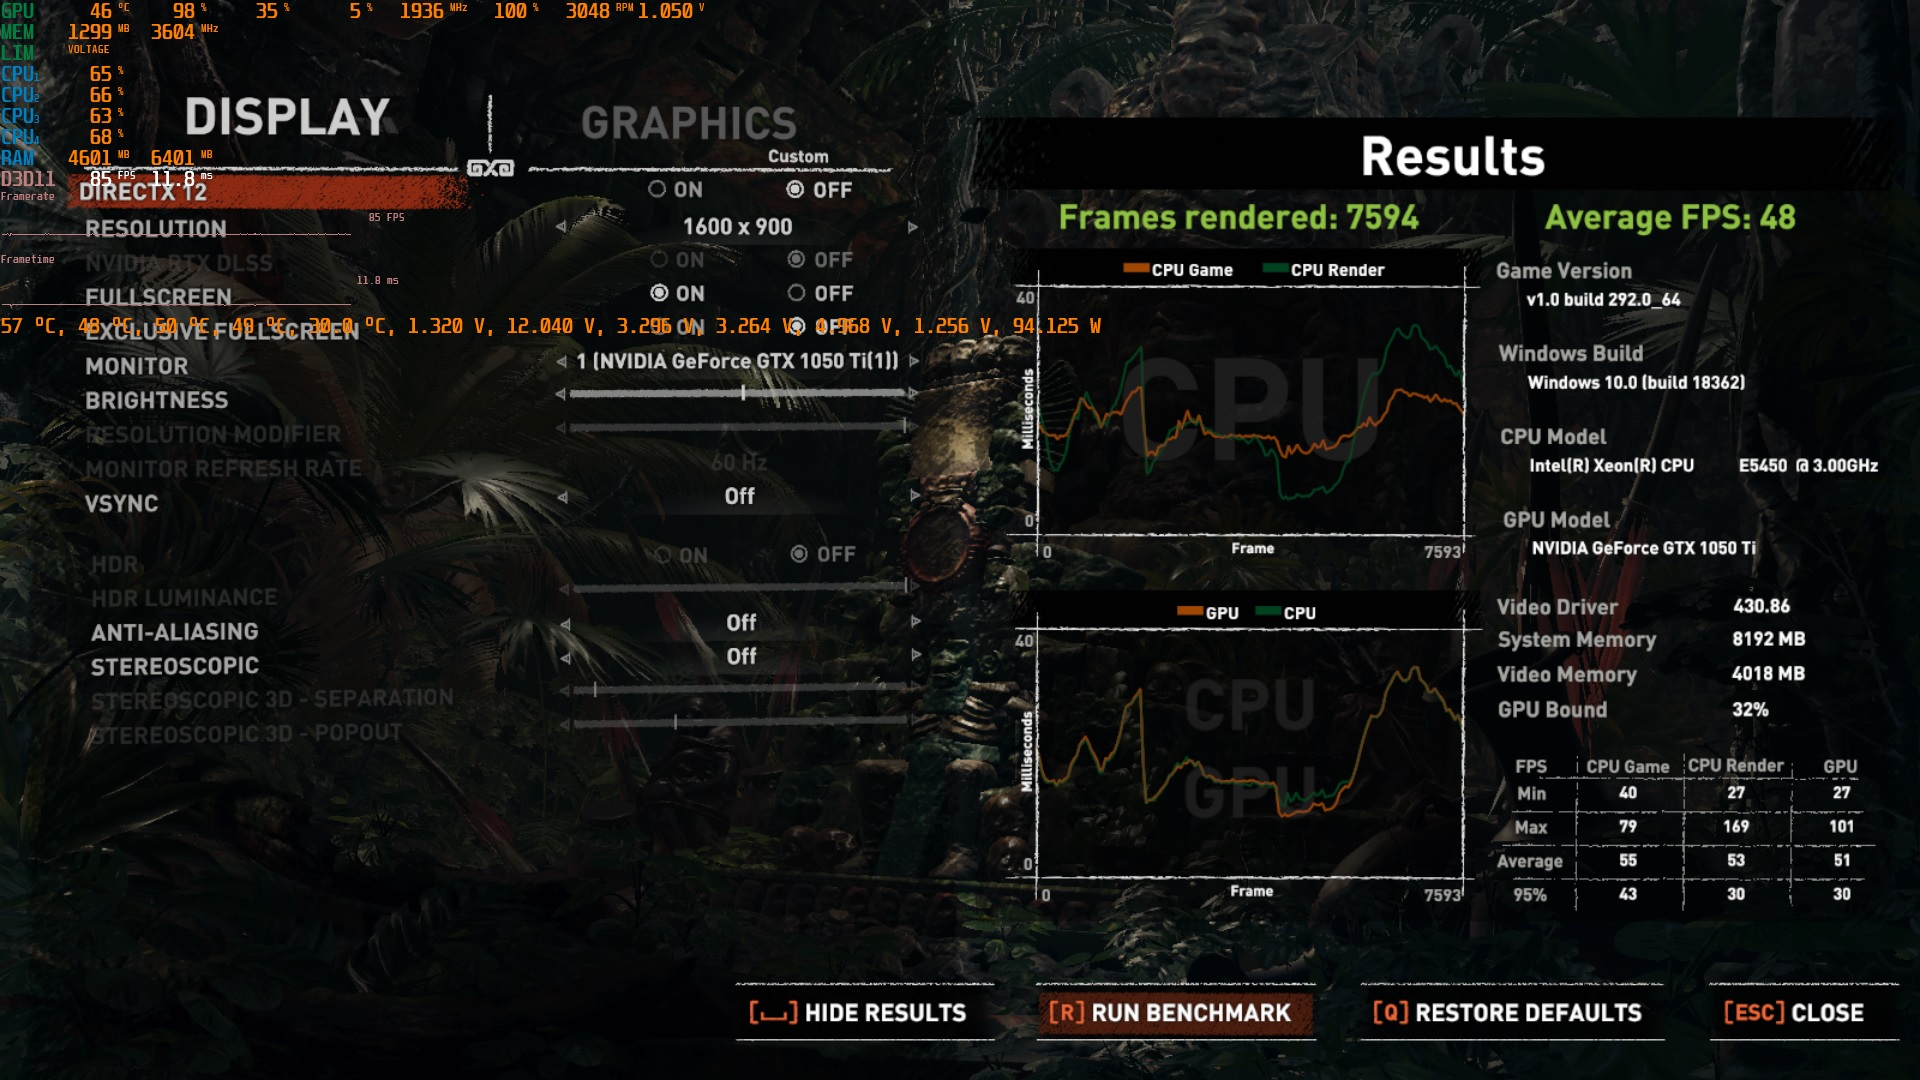 Shadow of the Tomb Raider benchmark | Page 3 | TechPowerUp